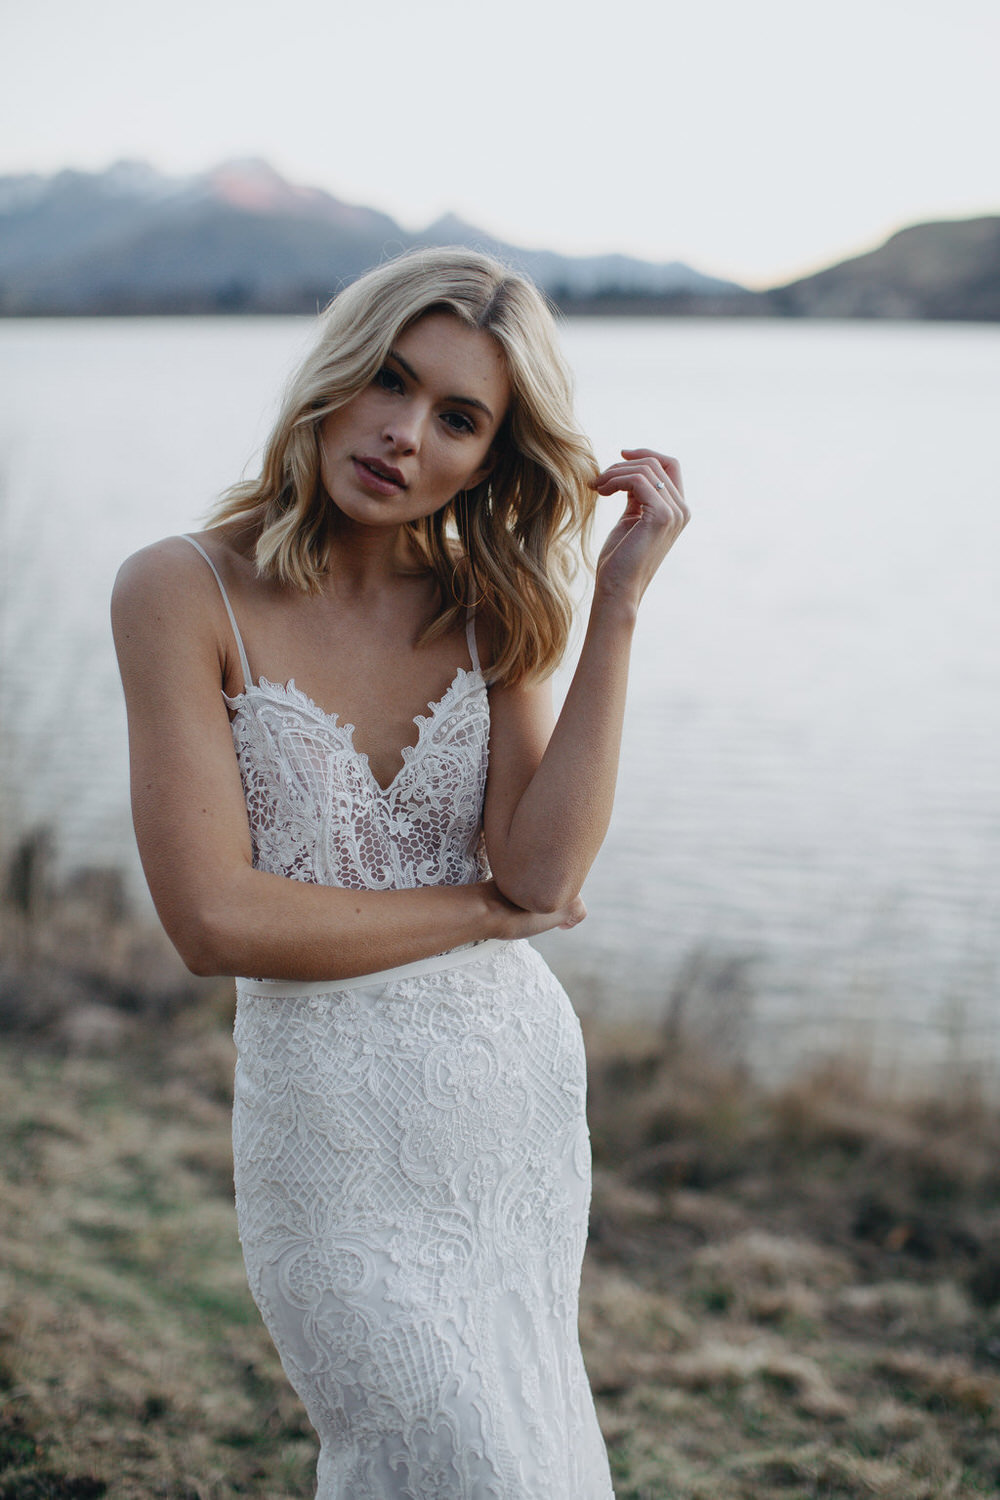 6 Things You NEED To Know Before Visiting A Wedding Boutique by Coco and Kate. Visiting a wedding boutique to start searching for your dress should be one of the most magical experiences of your life. But there are a few things that can make it more stressful than it needs to be. So today, we wanted to share our best tips with you so you're fully prepared before you even step into your first dress.